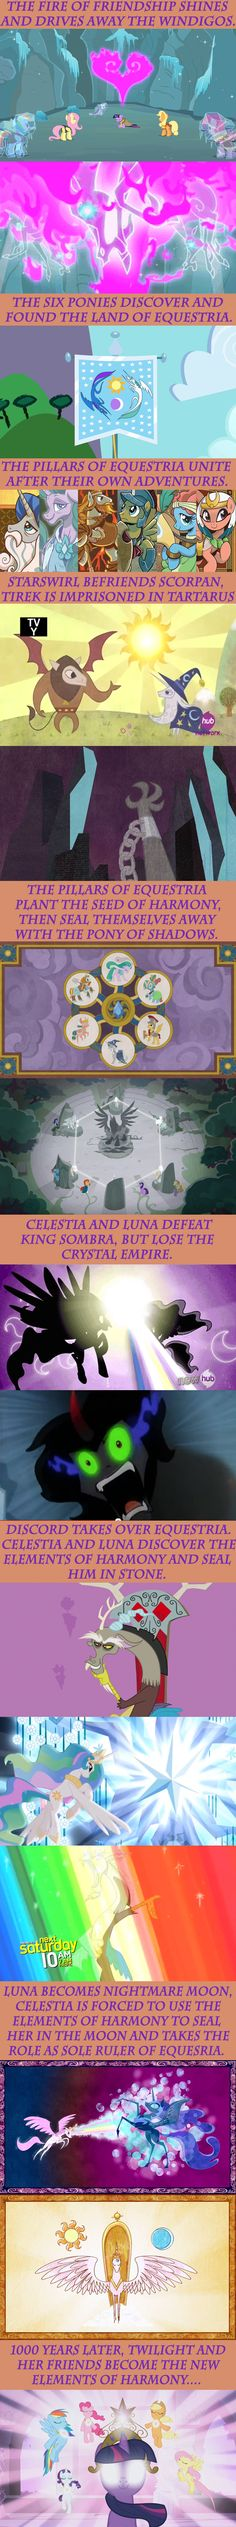 History of Equestria